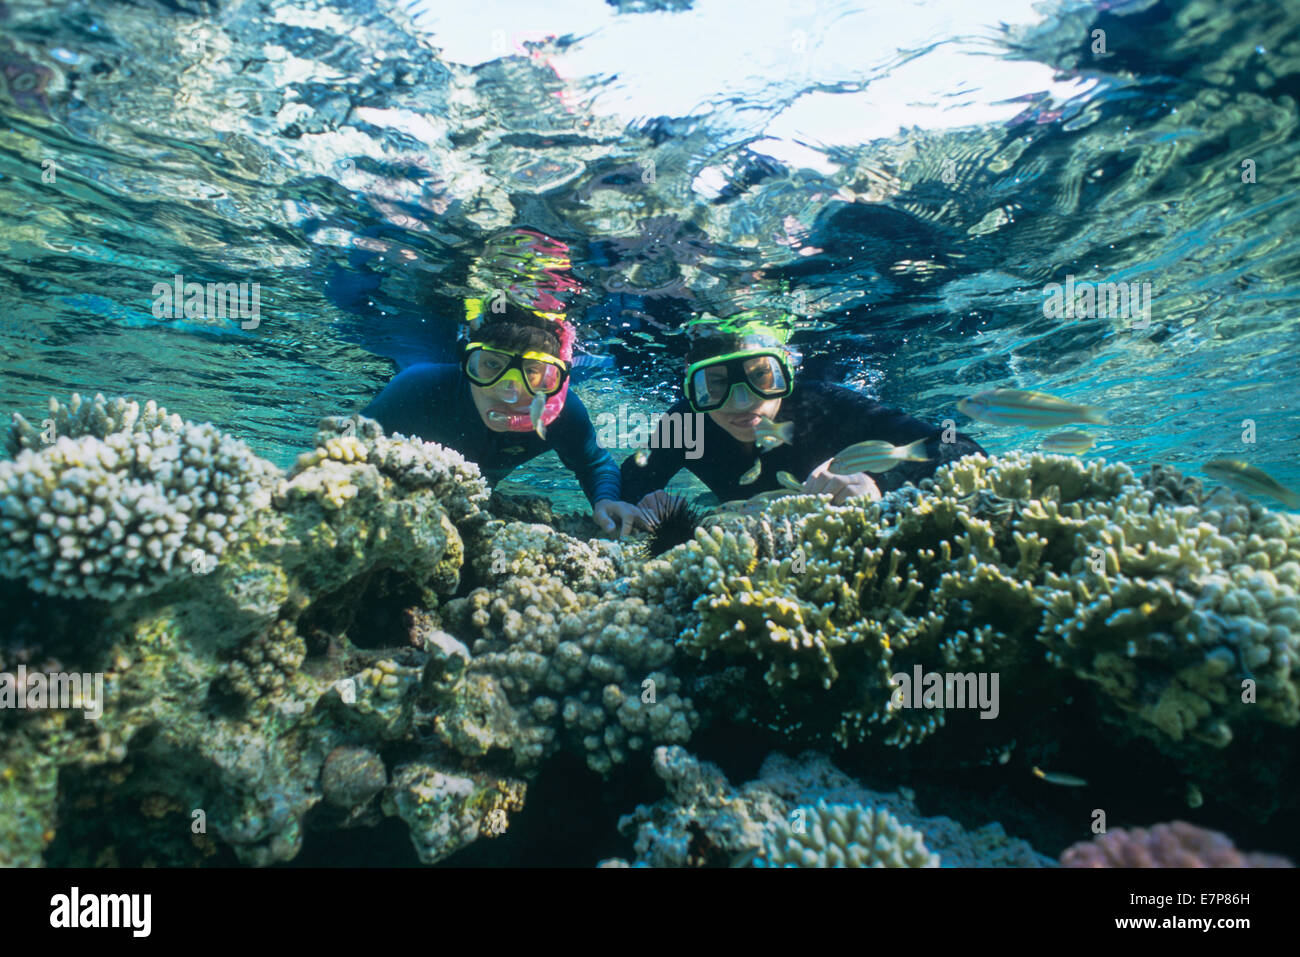 Snorkelers dive in a coral reef surrounded by fish; Sharm-el-Sheik, Egypt-Red Sea - Stock Image